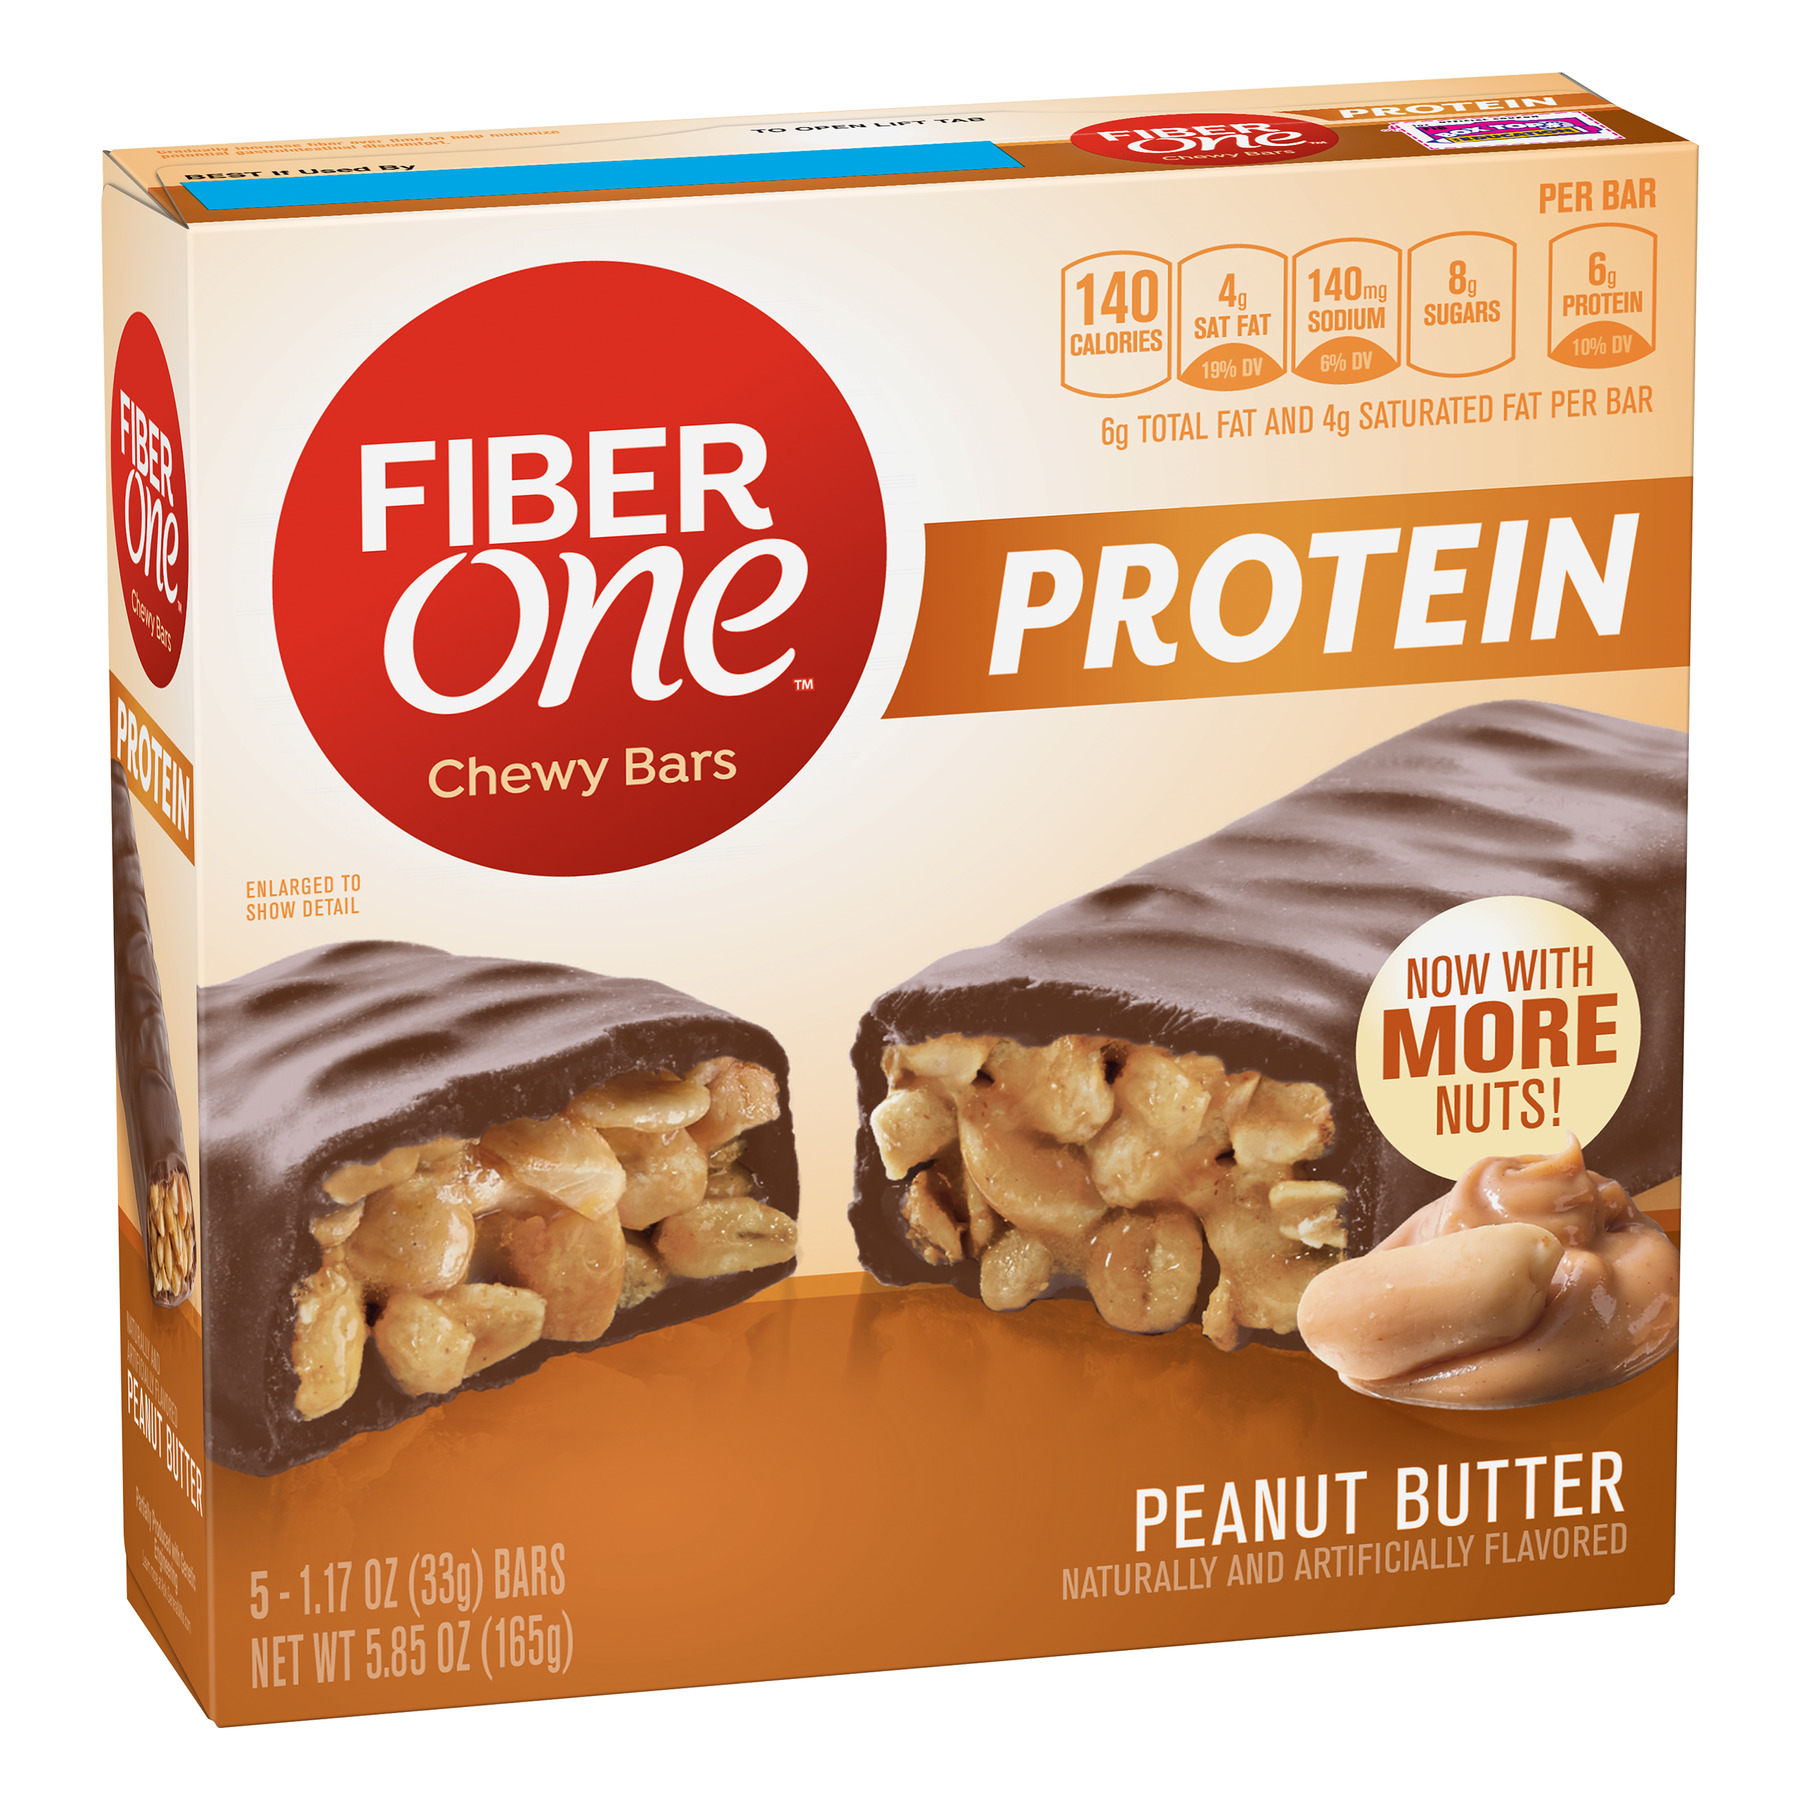 Fiber One Protein Chewy Bar, Peanut Butter, 6g Protein, 5 Ct